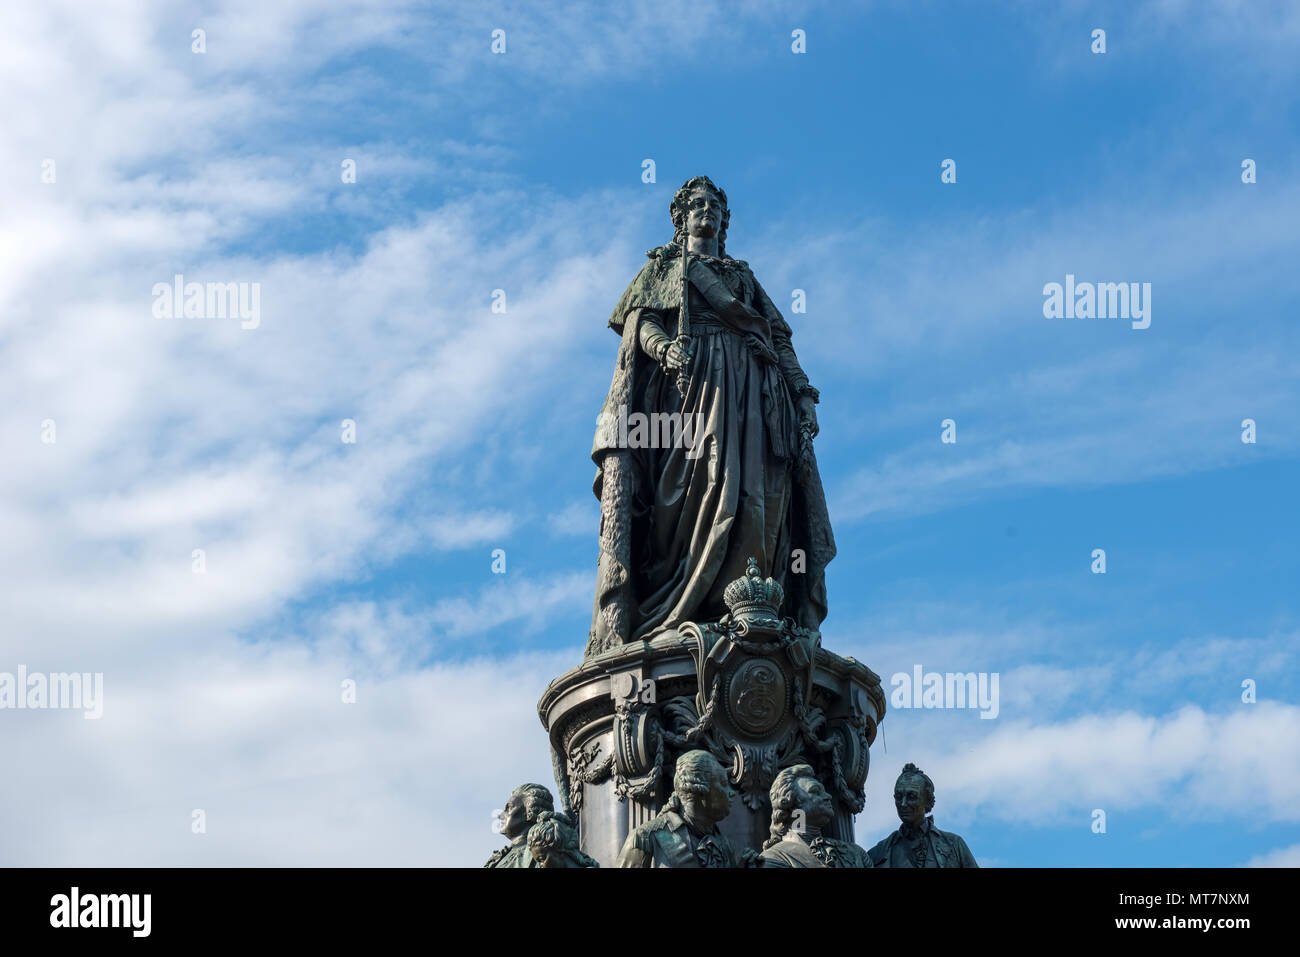 RUSSIA, SAINT PETERSBURG - AUGUST 18, 2017: A bronze monument to Catherine the Great on Ostrovsky Square in Catherine Square - Stock Image